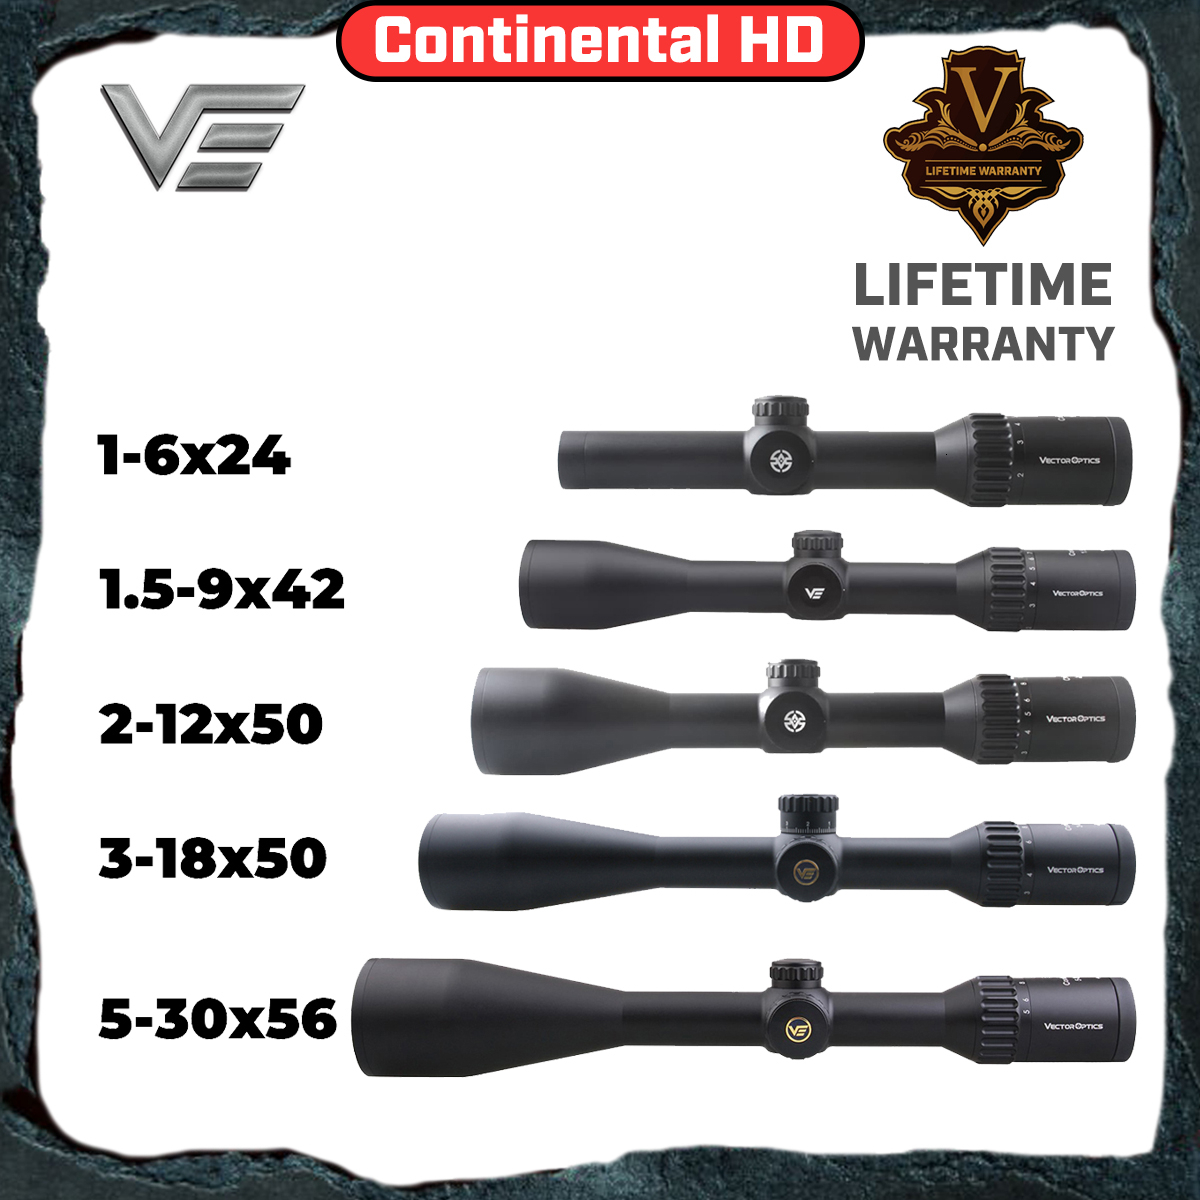 Vector Optics Continental HD Top Riflescope German Sys Rifle Scope For Tactical Hunting 1-6x24 2-12x50 1.5-9x42 3-18x50 5-30x56